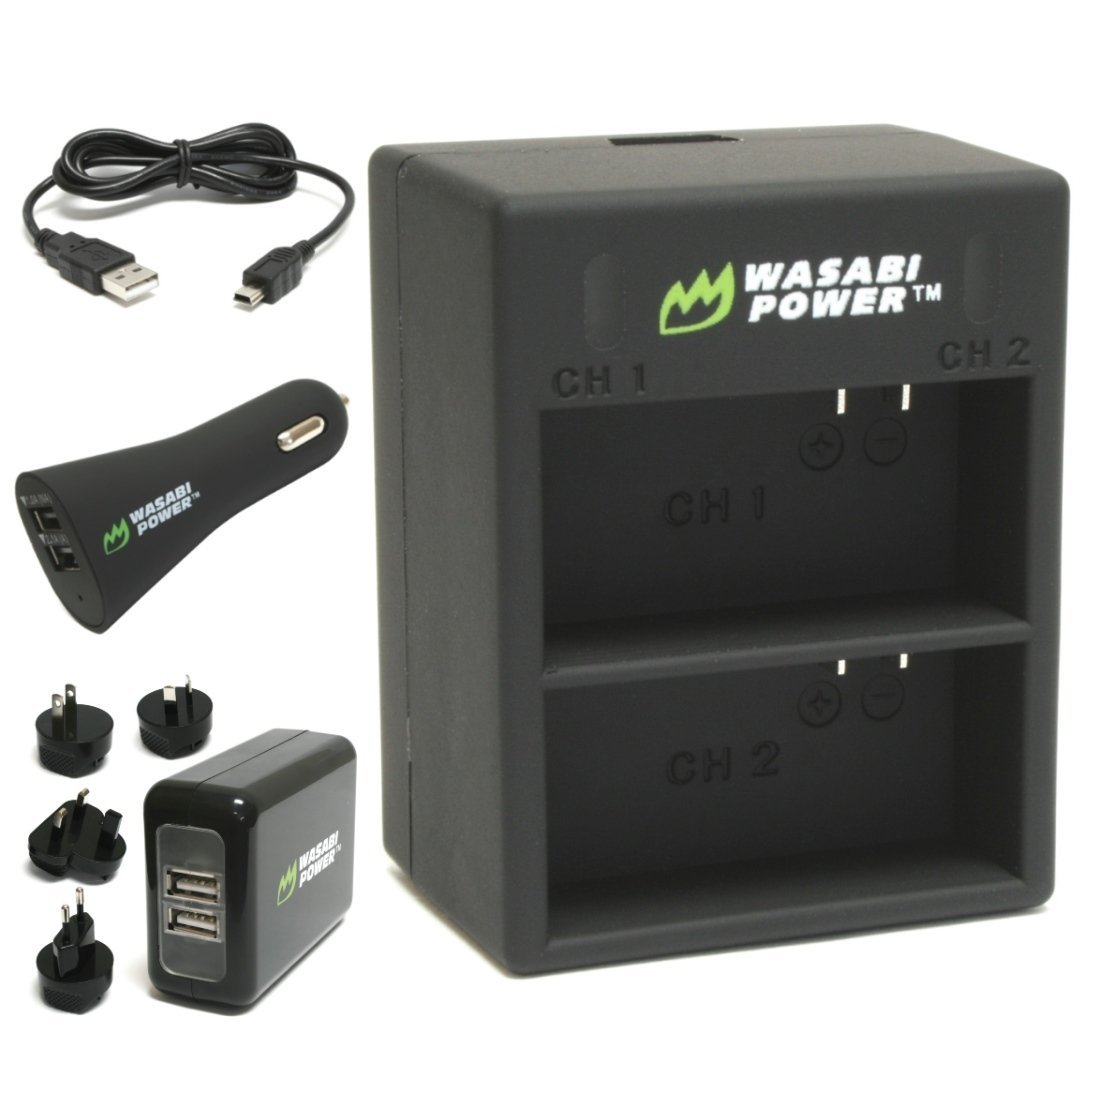 Wasabi Power Dual Battery Charger for GoPro HERO3, HERO3+ (with Car & Worldwide Plugs)